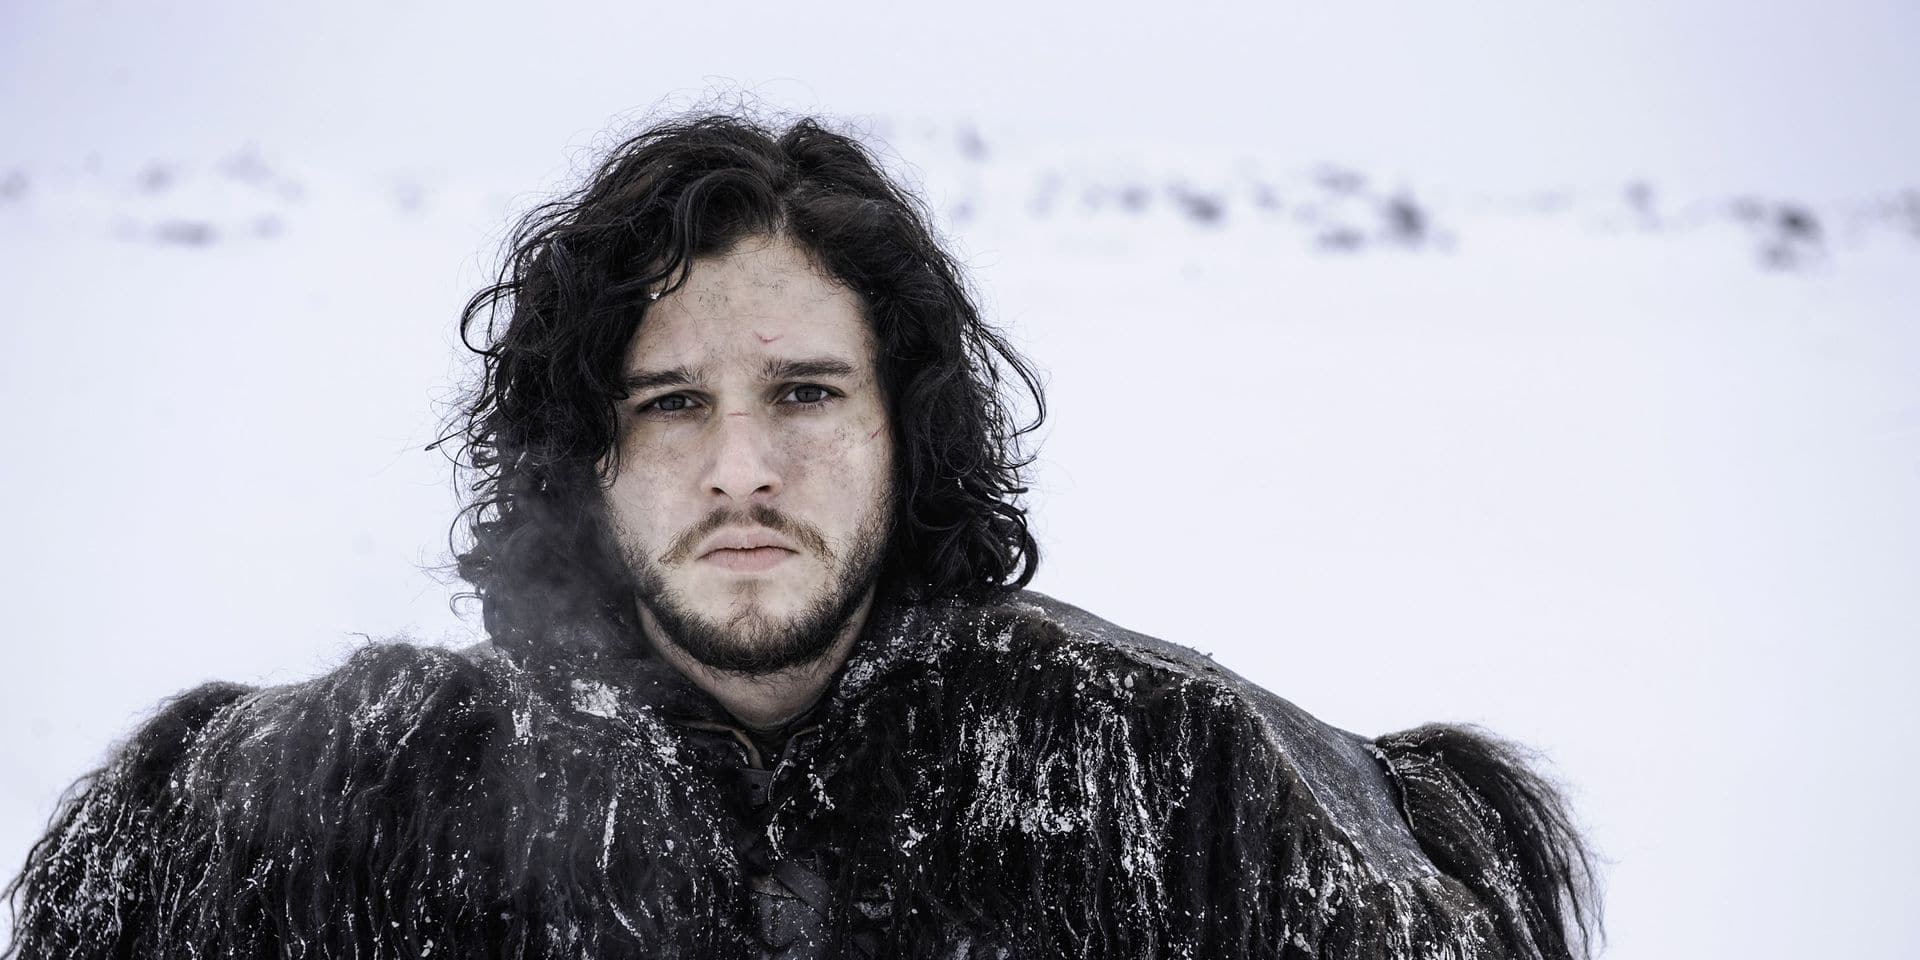 Jon Snow a failli perdre un testicule durant le tournage de Games of Throne !